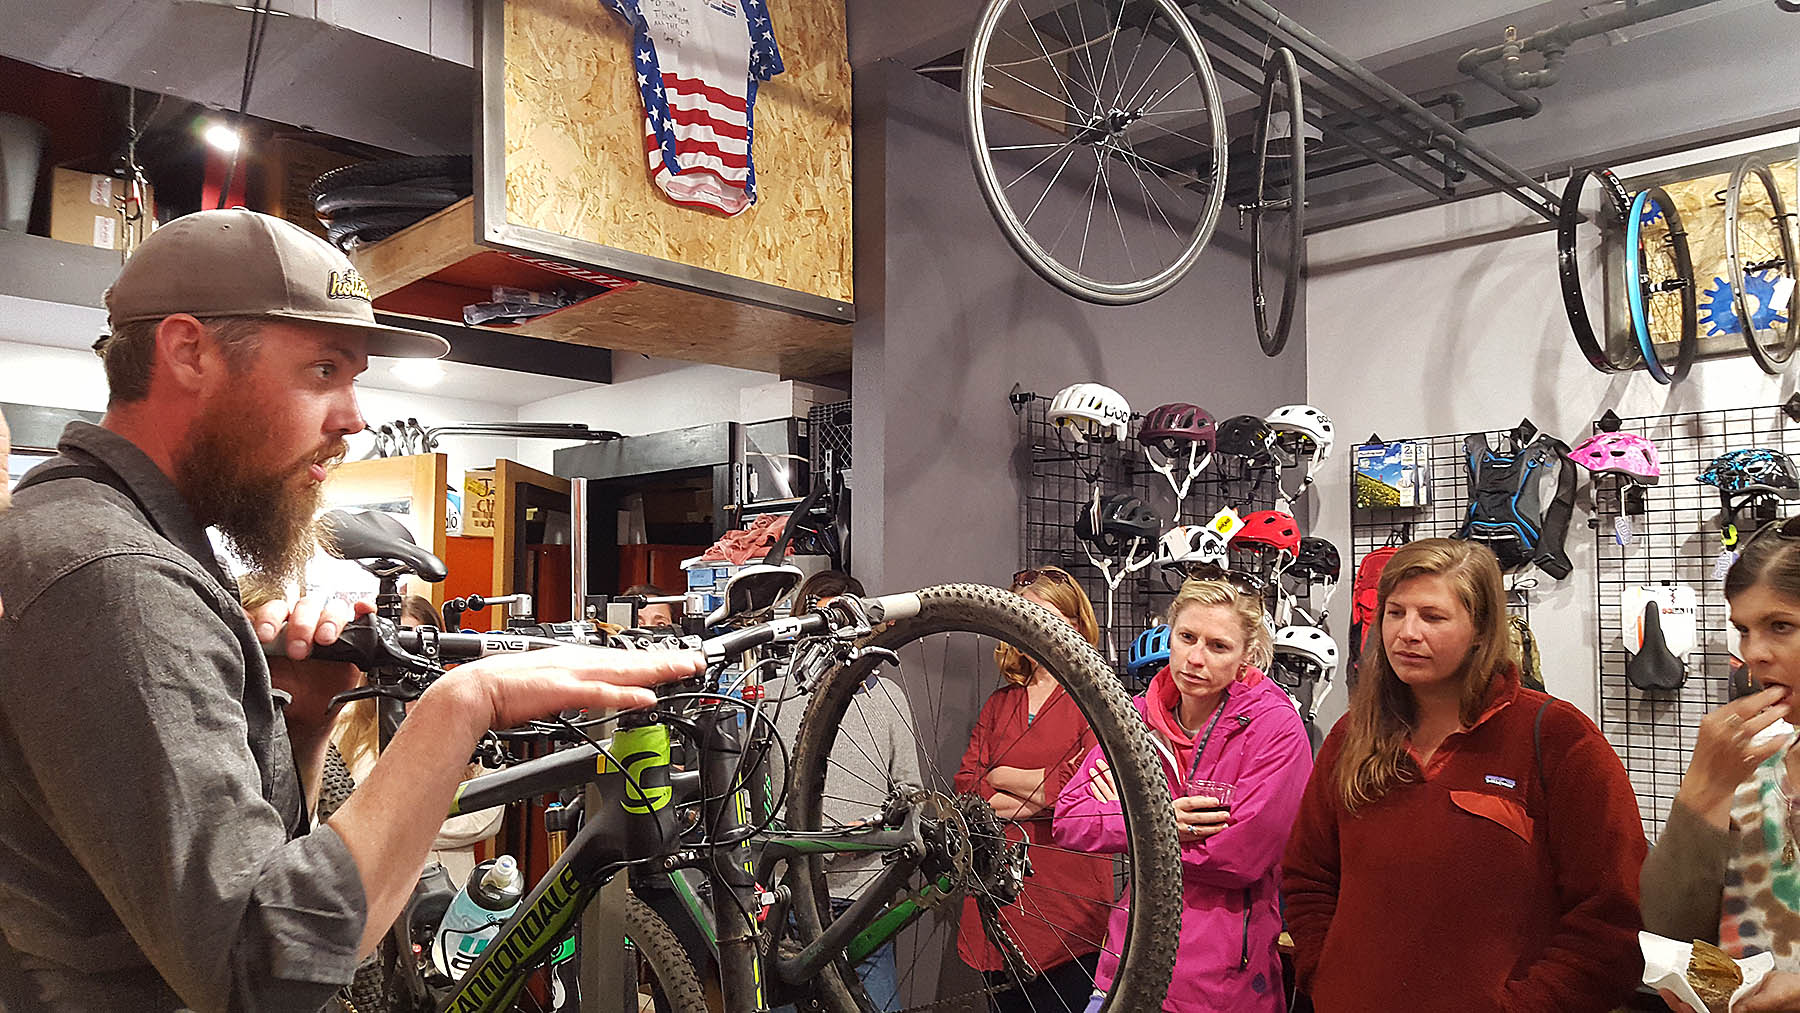 Learning how to set up their bikes